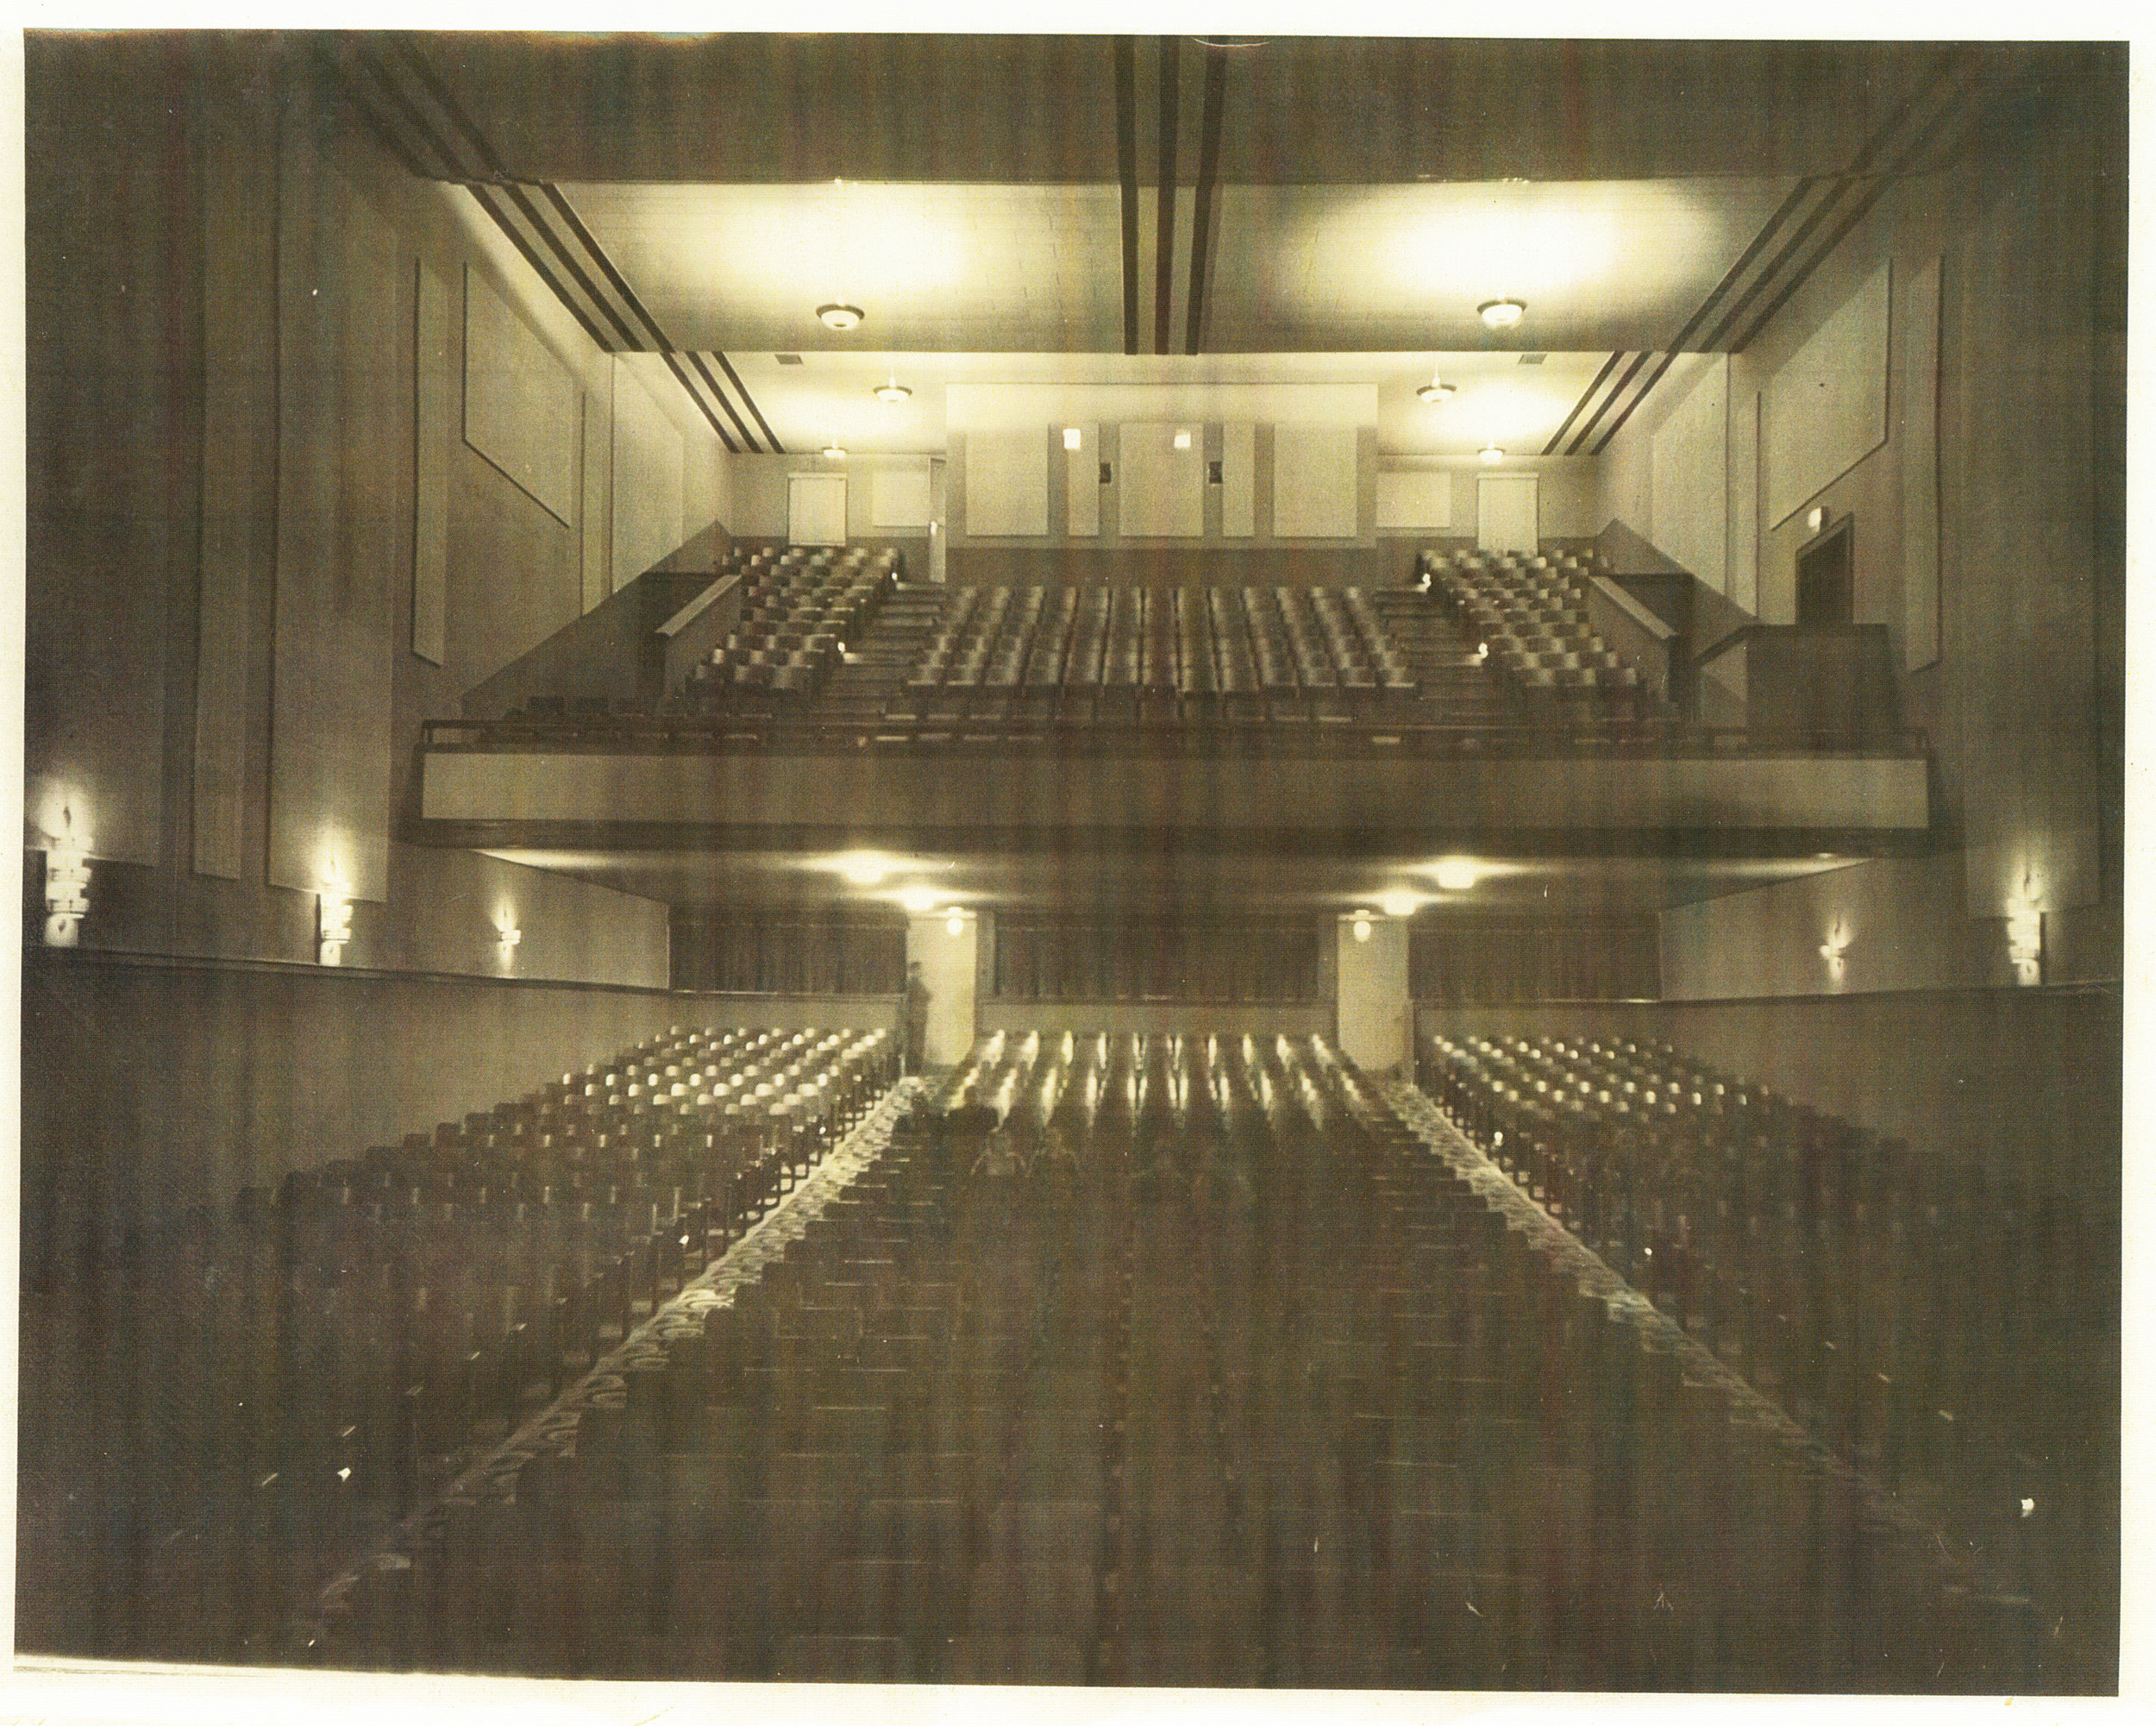 Appalachian Theatre Auditorium, 1938